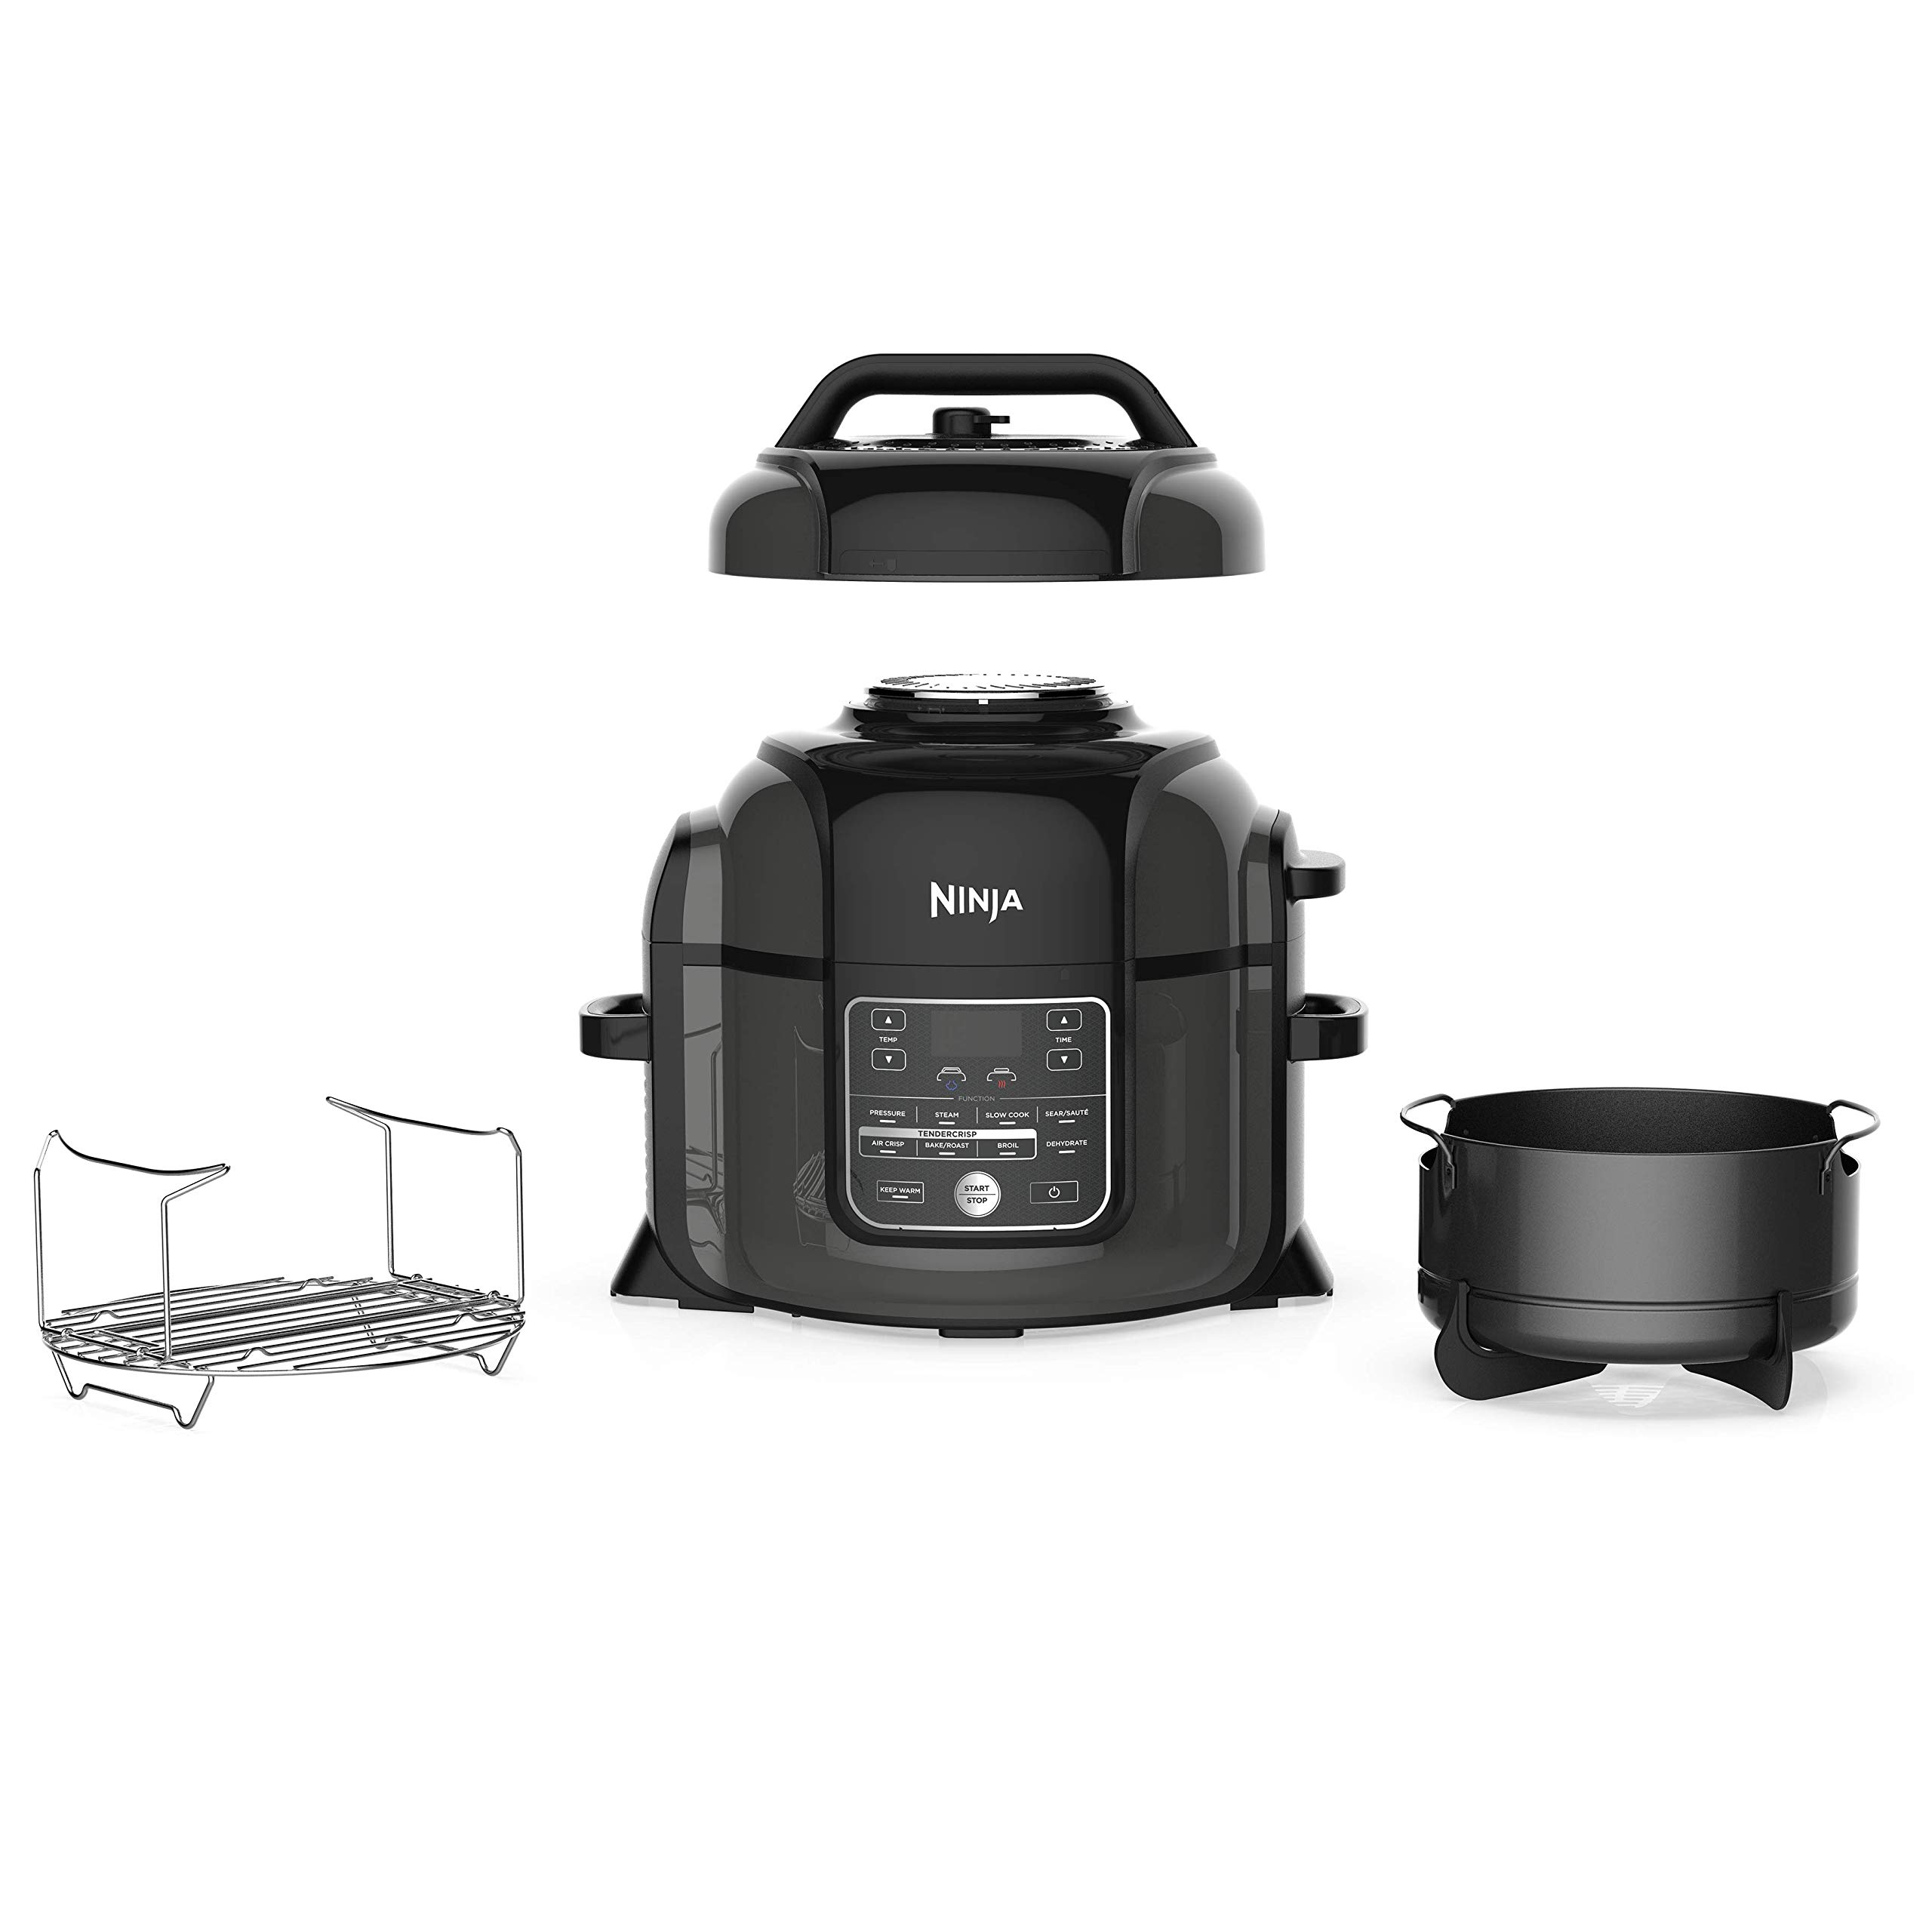 Ninja OP302 Foodi Cooker, Steamer & Air w/TenderCrisp Technology Pressure Cooker & Air Fryer All-in-One, 6.5 quart w/dehydrate, Black/Gray product image